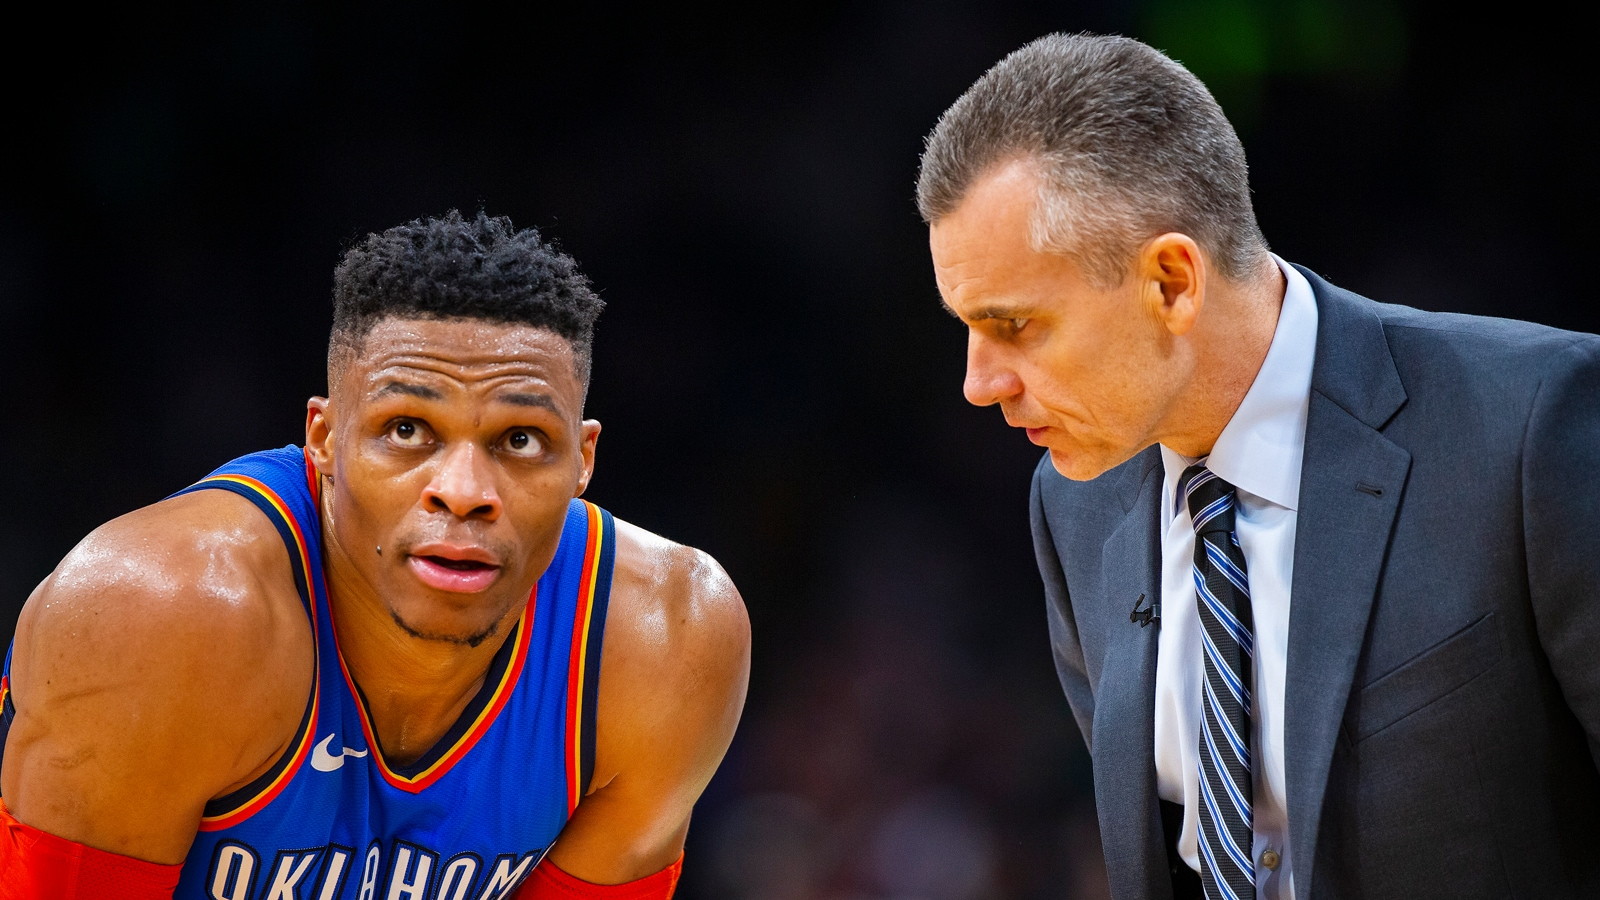 Russell Westbrook and Billy Donovan